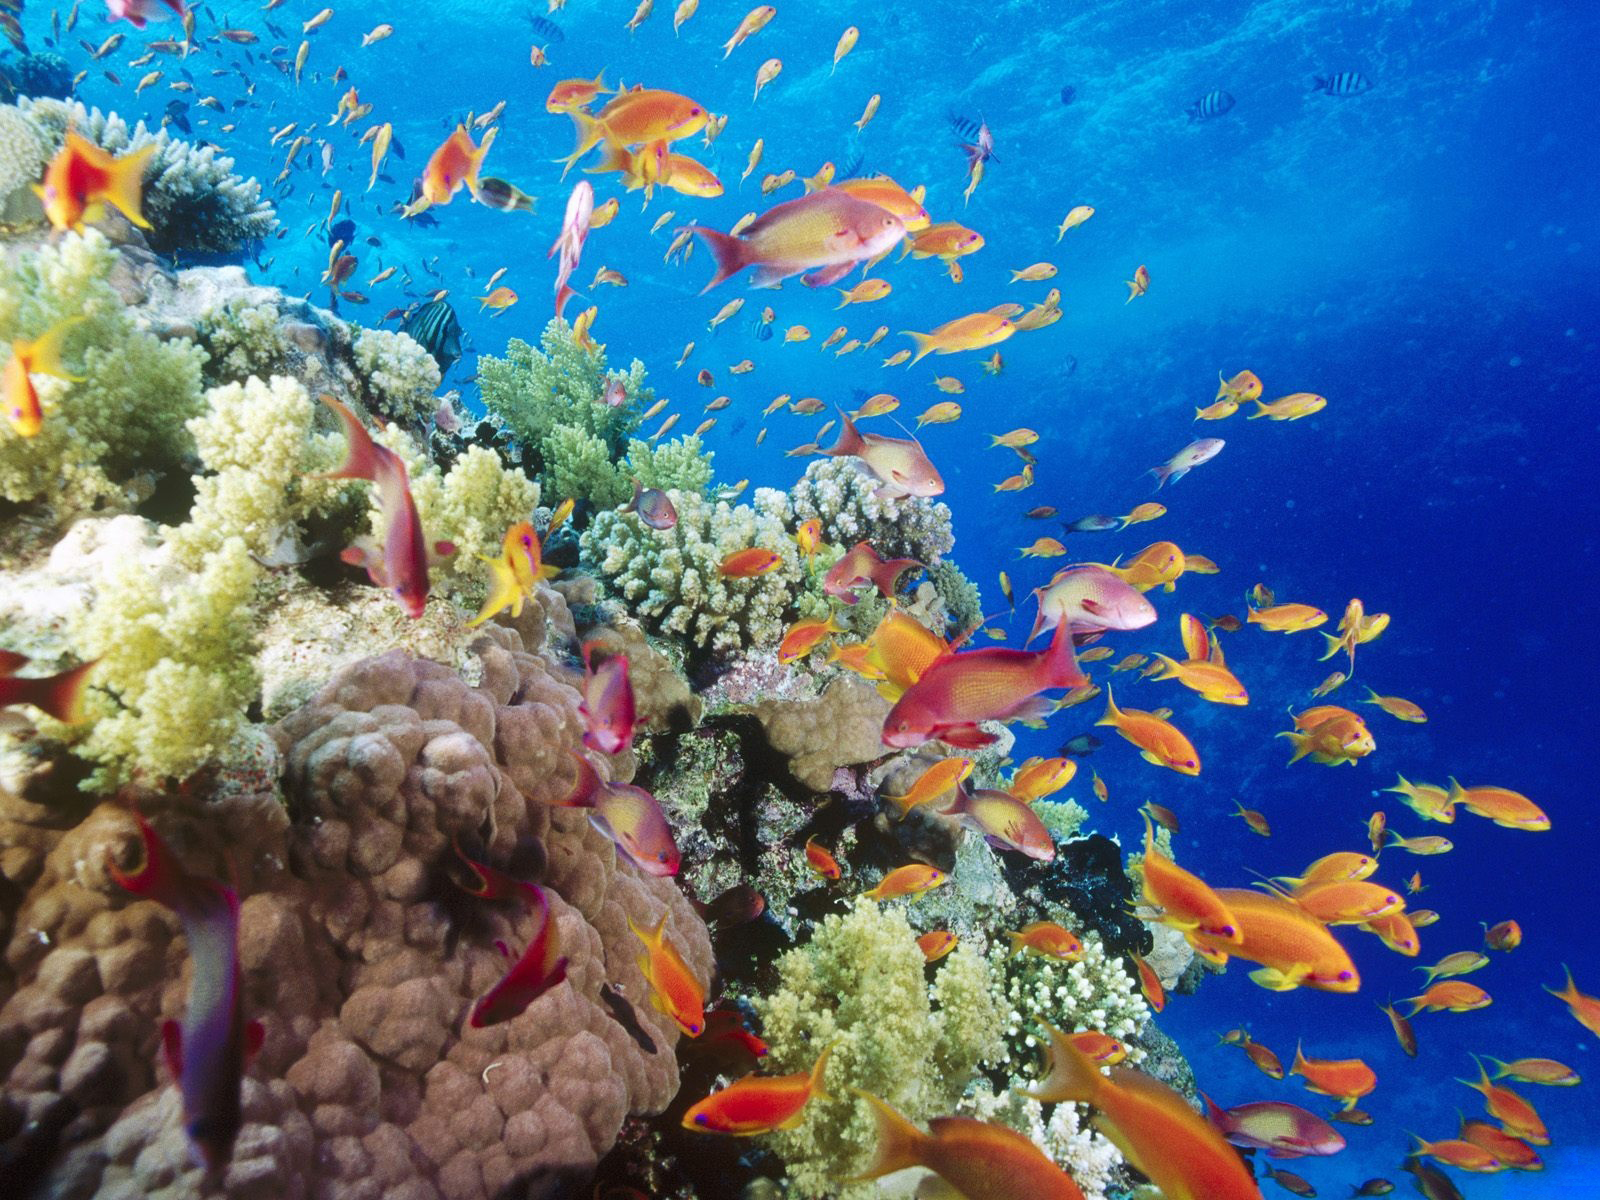 World lets go to see some beautiful wallpaper of under water